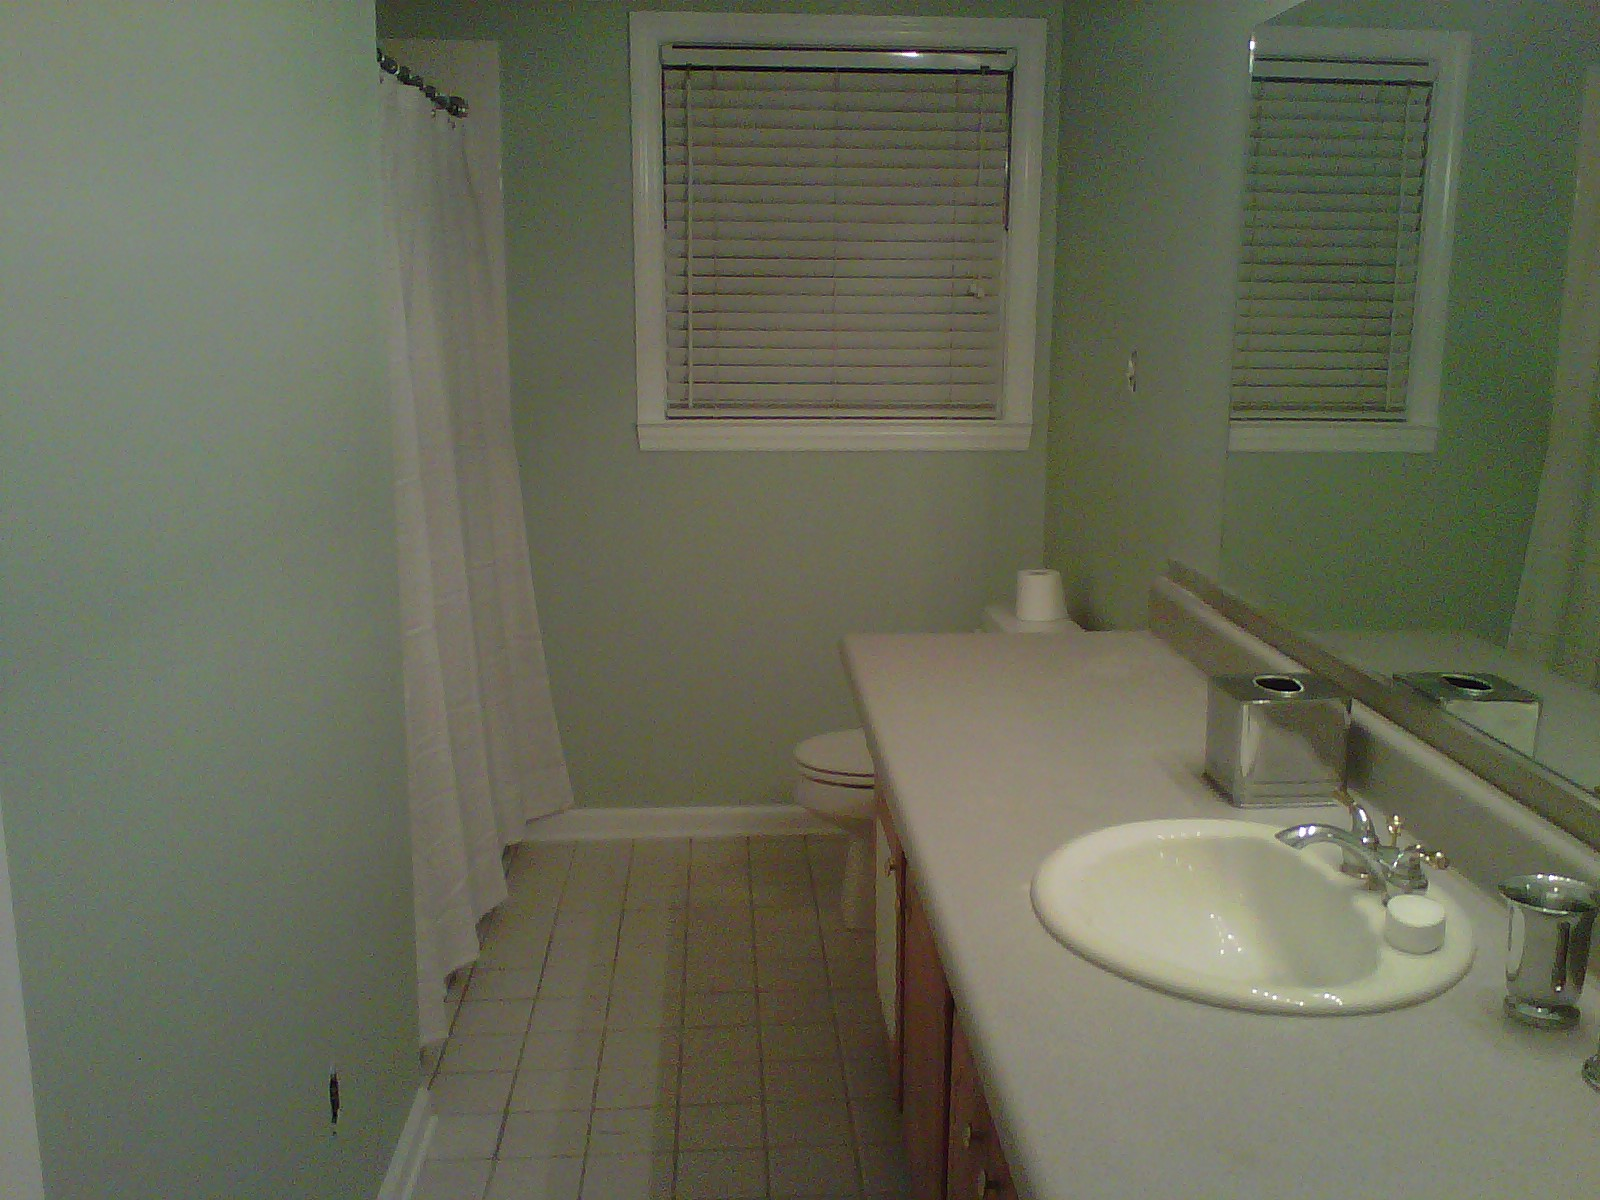 6x9 bathroom layout - Http Www Pic2fly Com Bathroom Layout 5x7 Html